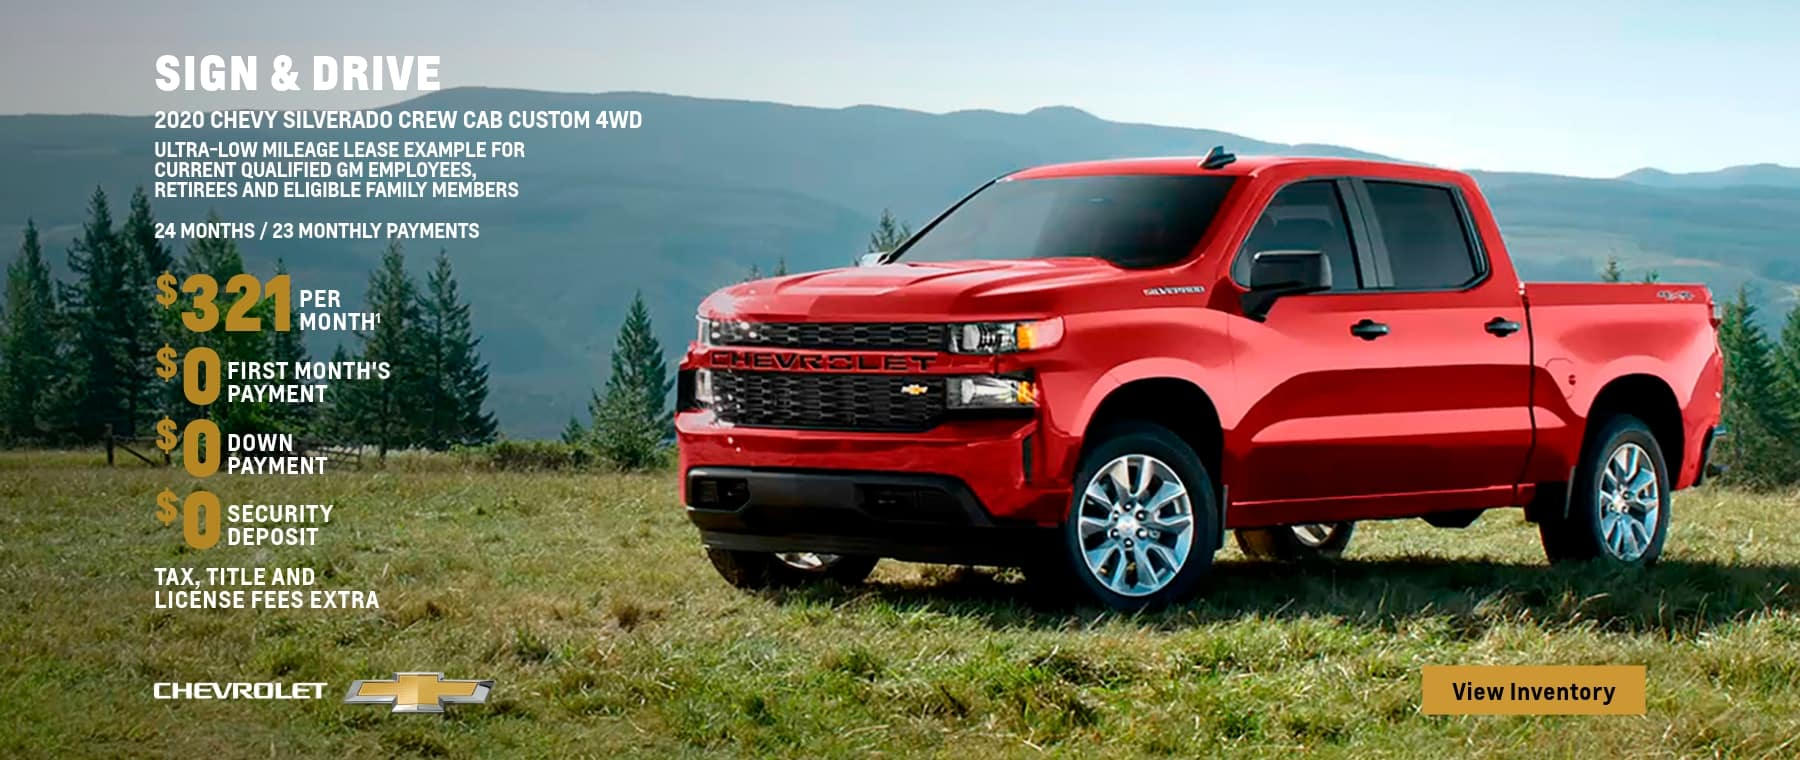 2020 Silverado Crew Cab Custom 4WD. Sign & Drive Ultra-Low Mileage Lease Example for Current Qualified GM Employees, Retirees and Eligible Family Members. $321 per month.